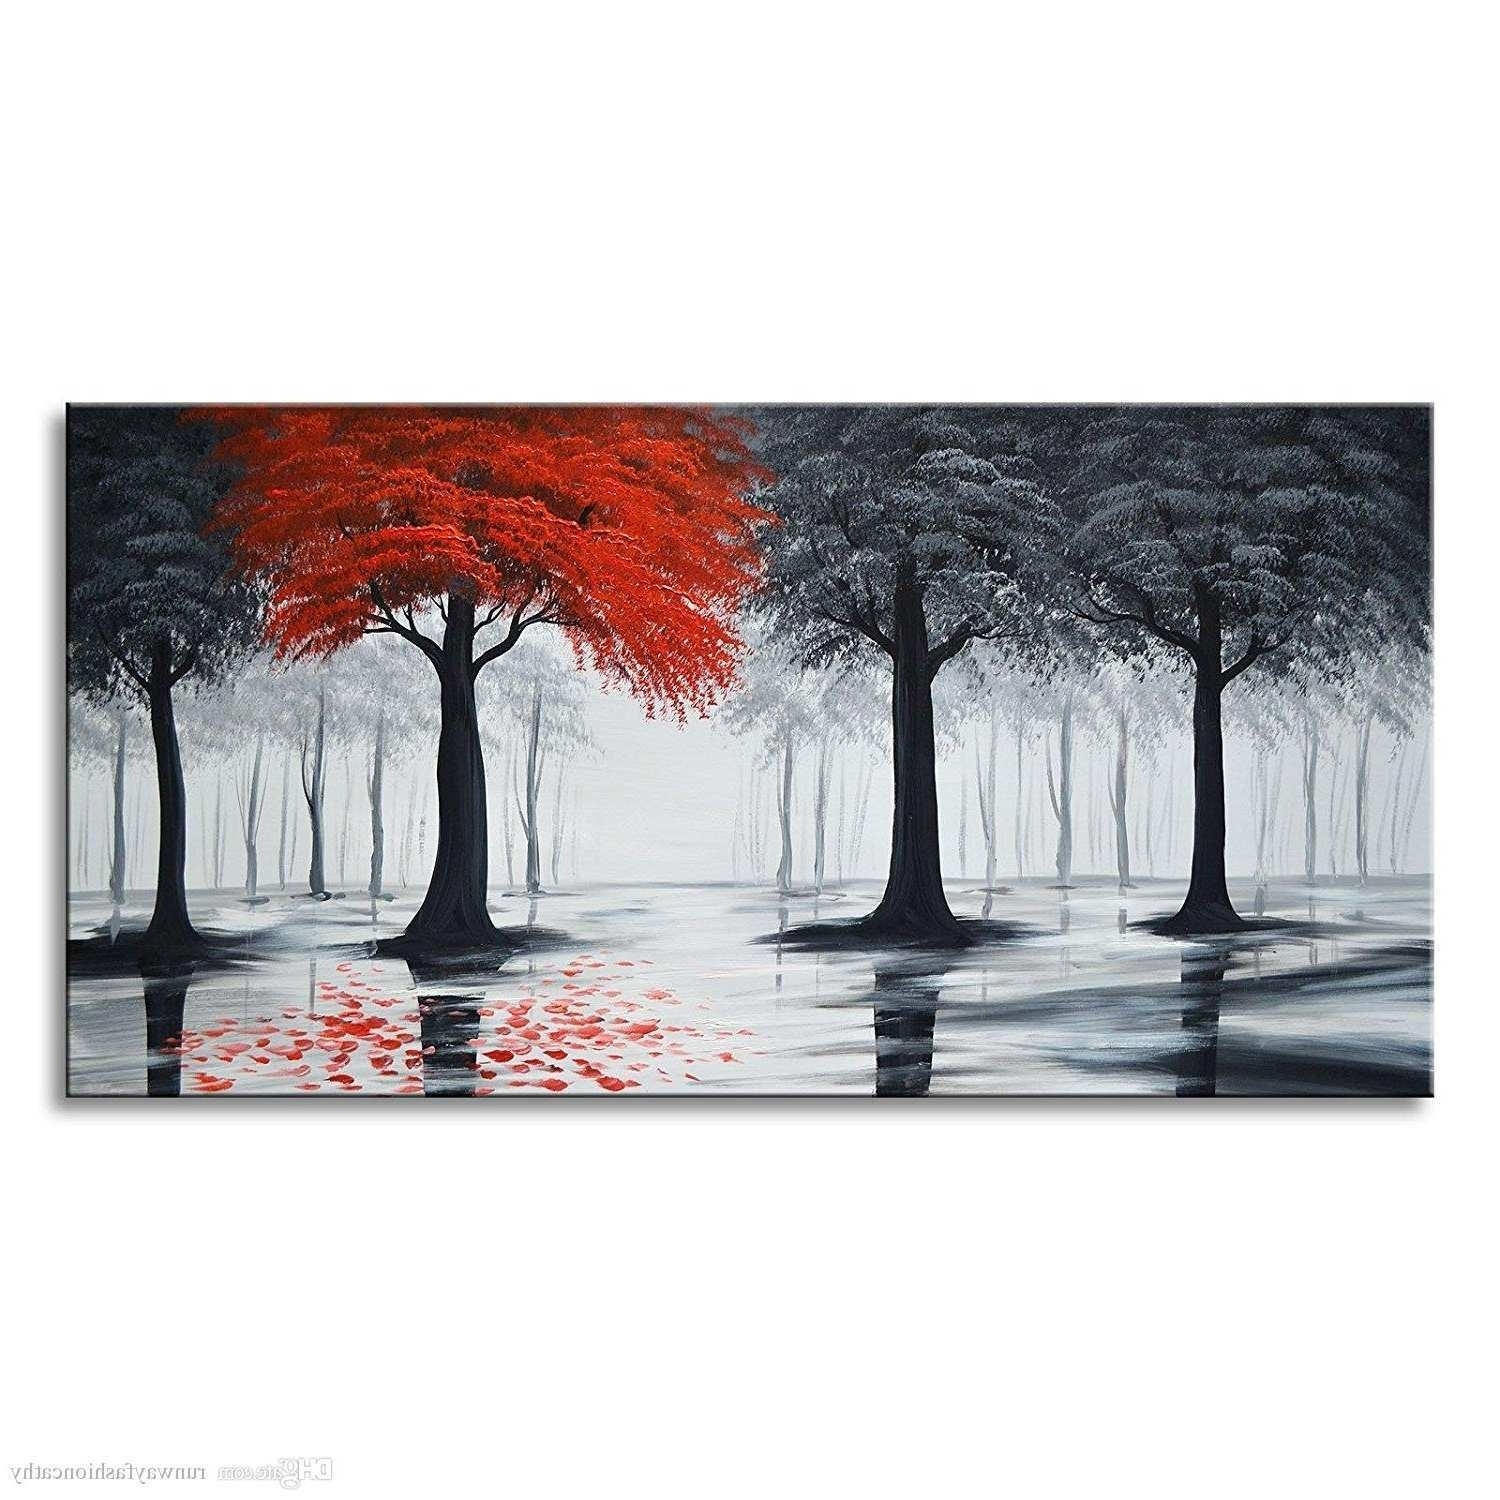 Red Canvas Painting Elegant Best 15 Of Red Canvas Wall Art intended for Red Canvas Wall Art (Image 18 of 20)